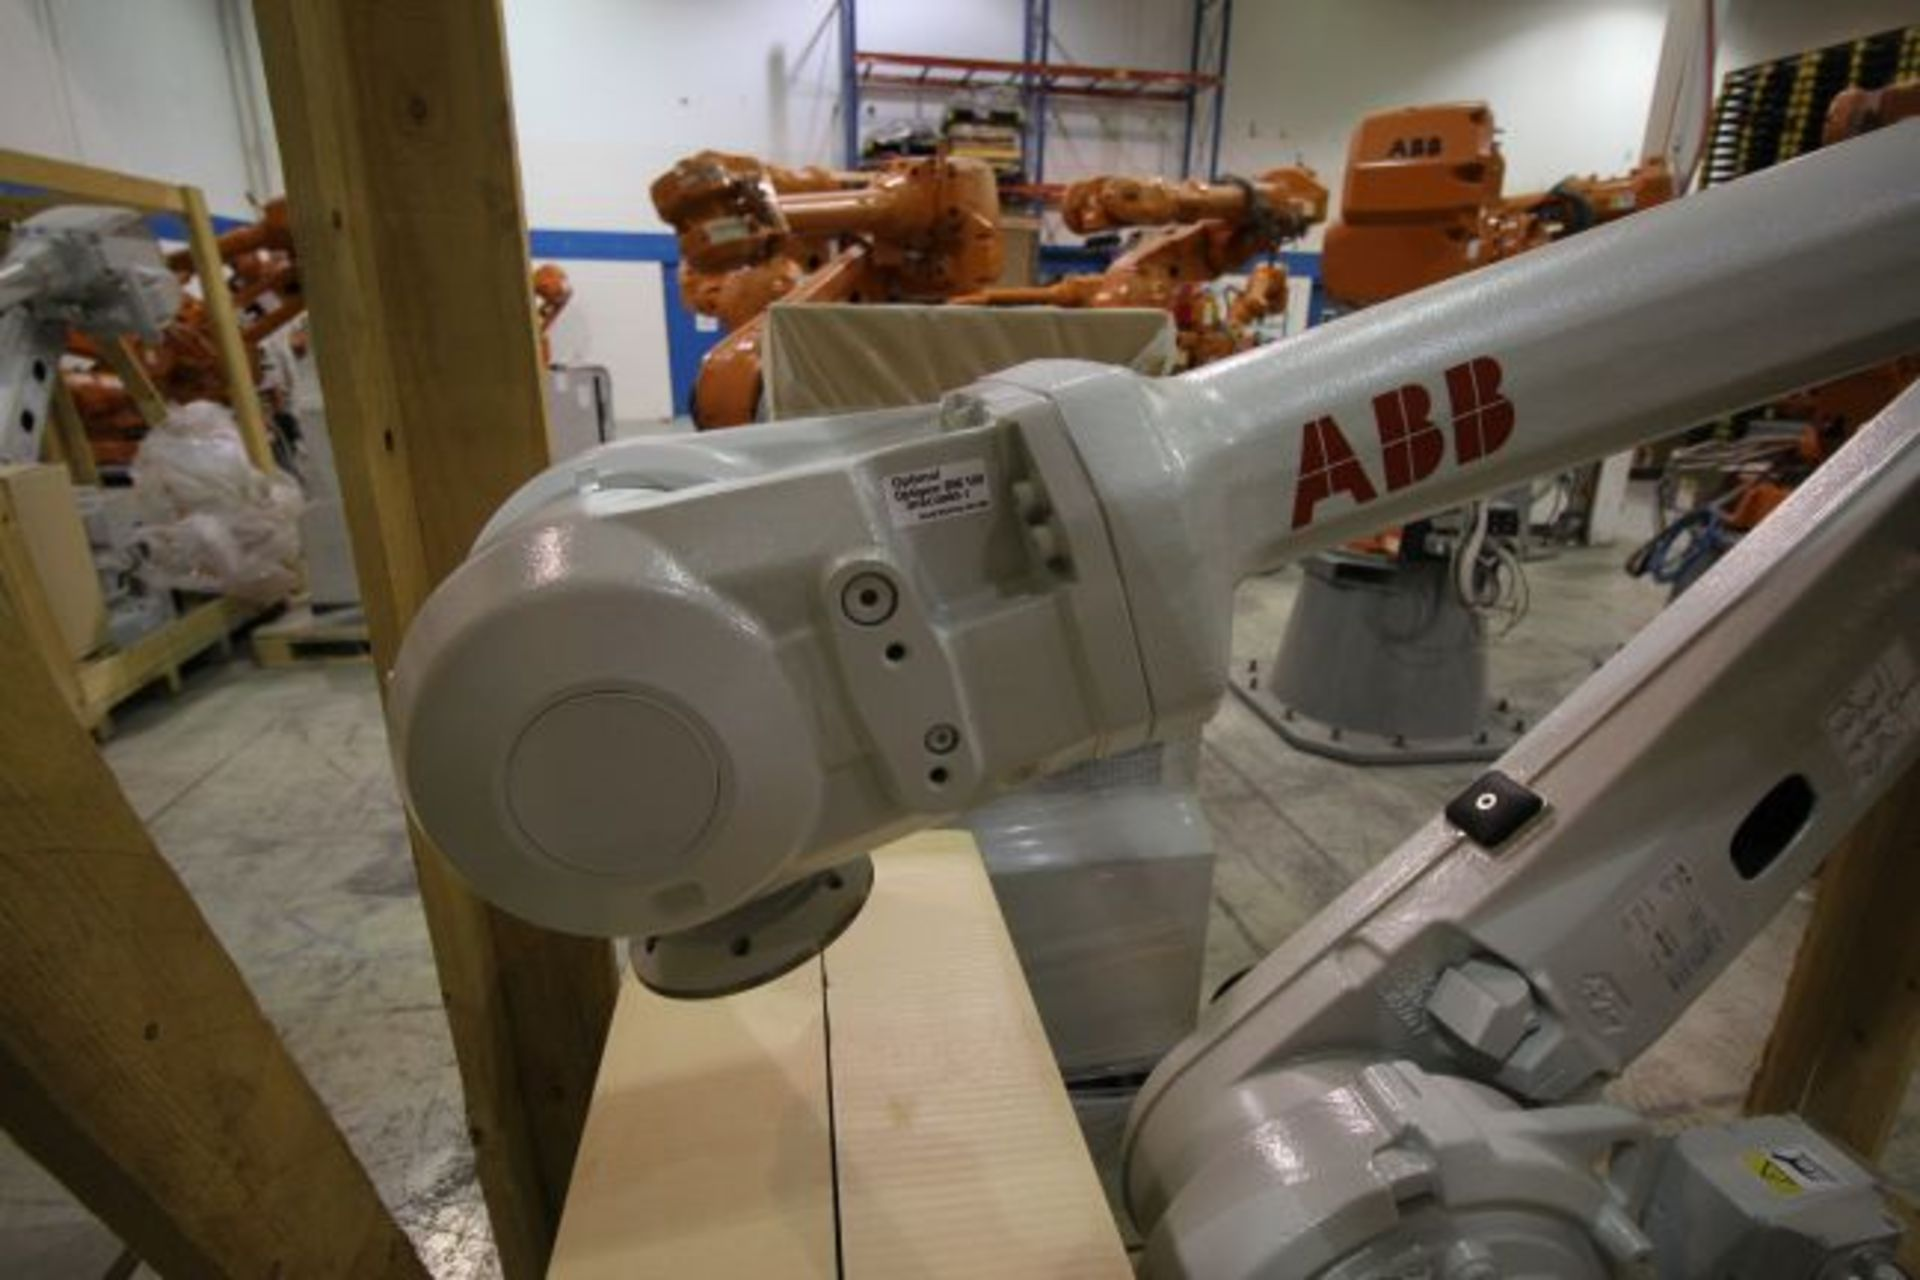 (NEW) ABB ROBOT IRB 4600 2.55/40KG WITH IRC5 CONTROLS, YEAR 2014, SN 101897 TEACH PENDANT& CABLES - Image 2 of 11